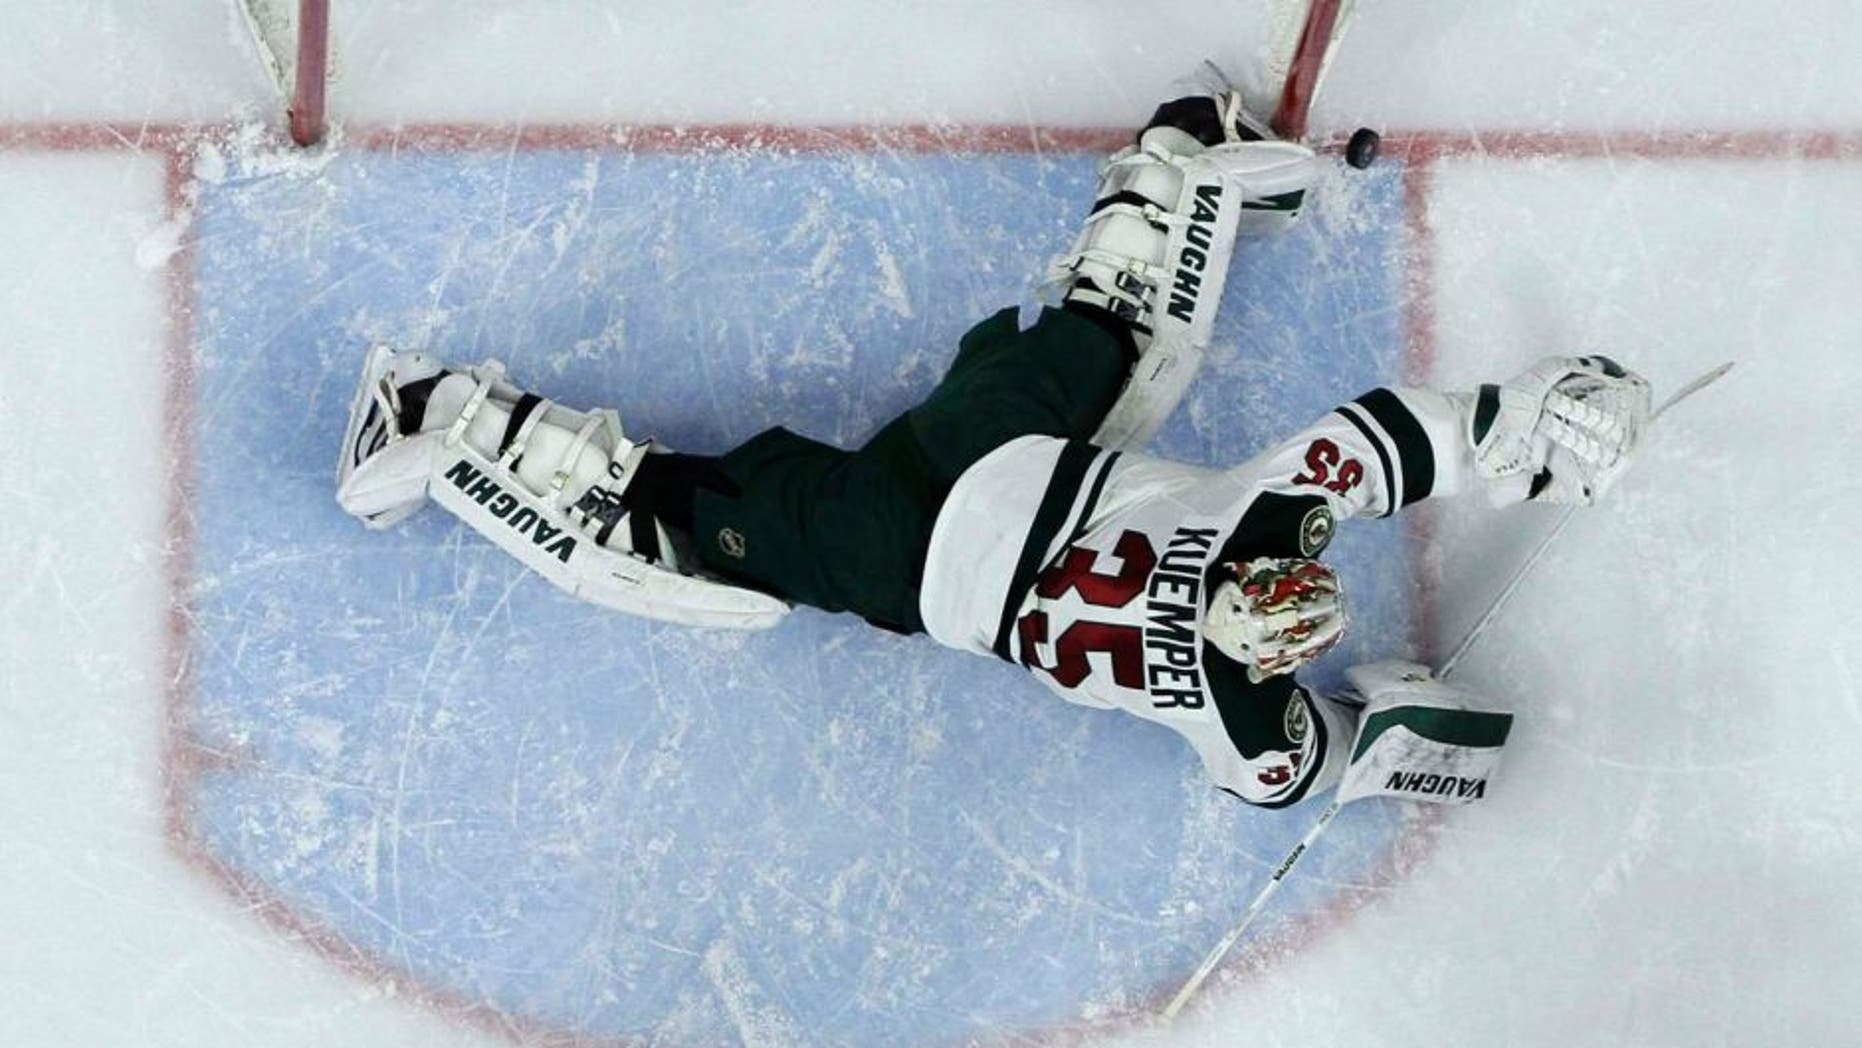 Thursday, November 20: The Minnesota Wild's Darcy Kuemper blocks a shot during the second period against the Philadelphia Flyers. The Wild won 3-2.